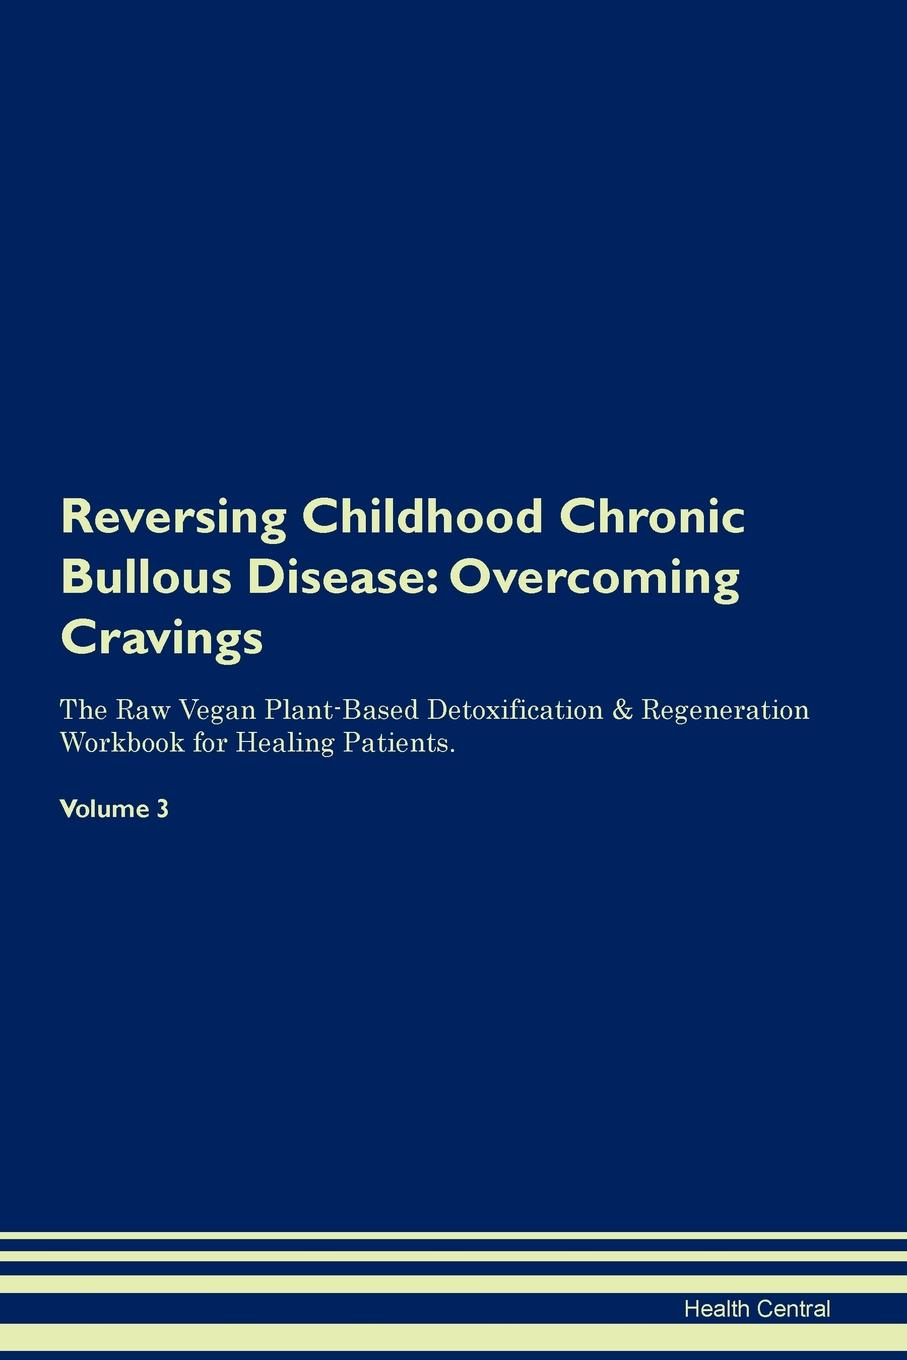 Фото - Health Central Reversing Childhood Chronic Bullous Disease. Overcoming Cravings The Raw Vegan Plant-Based Detoxification & Regeneration Workbook for Healing Patients. Volume 3 health central reversing extramammary paget s disease overcoming cravings the raw vegan plant based detoxification regeneration workbook for healing patients volume 3